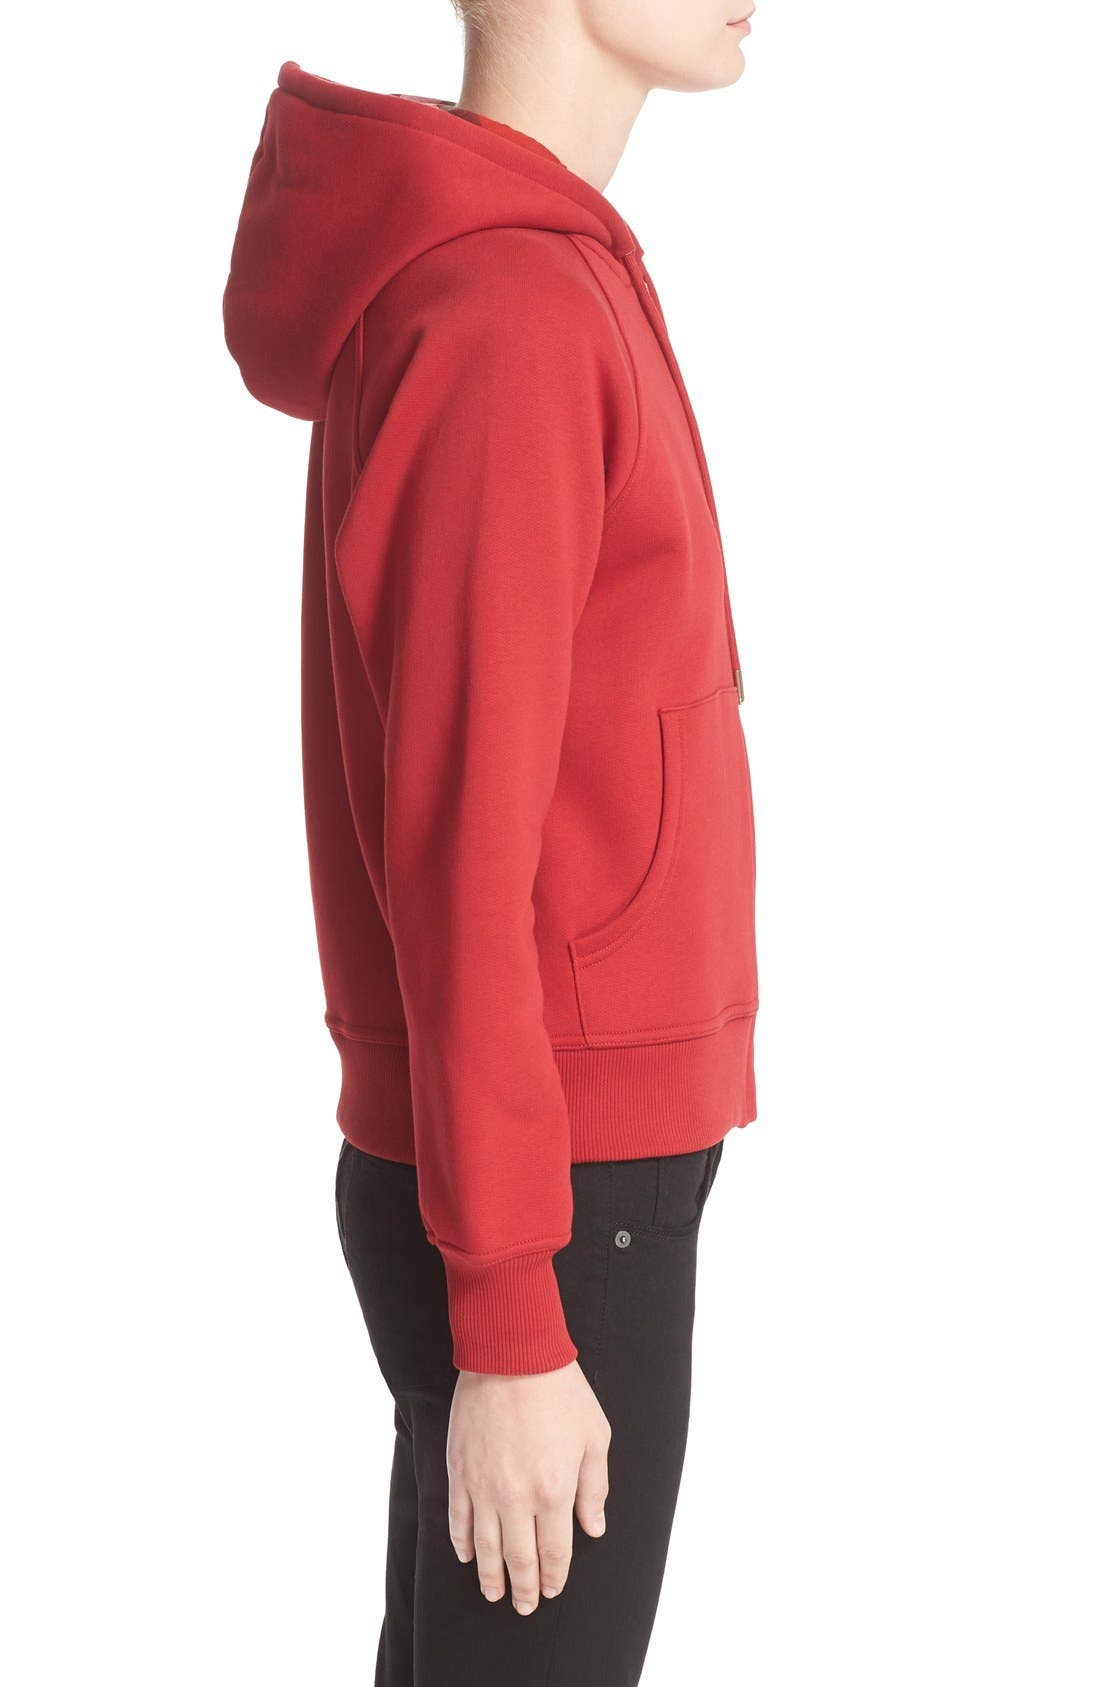 BURBERRY, Check Print Hoodie, Alternate thumbnail 8, color, PARADE RED